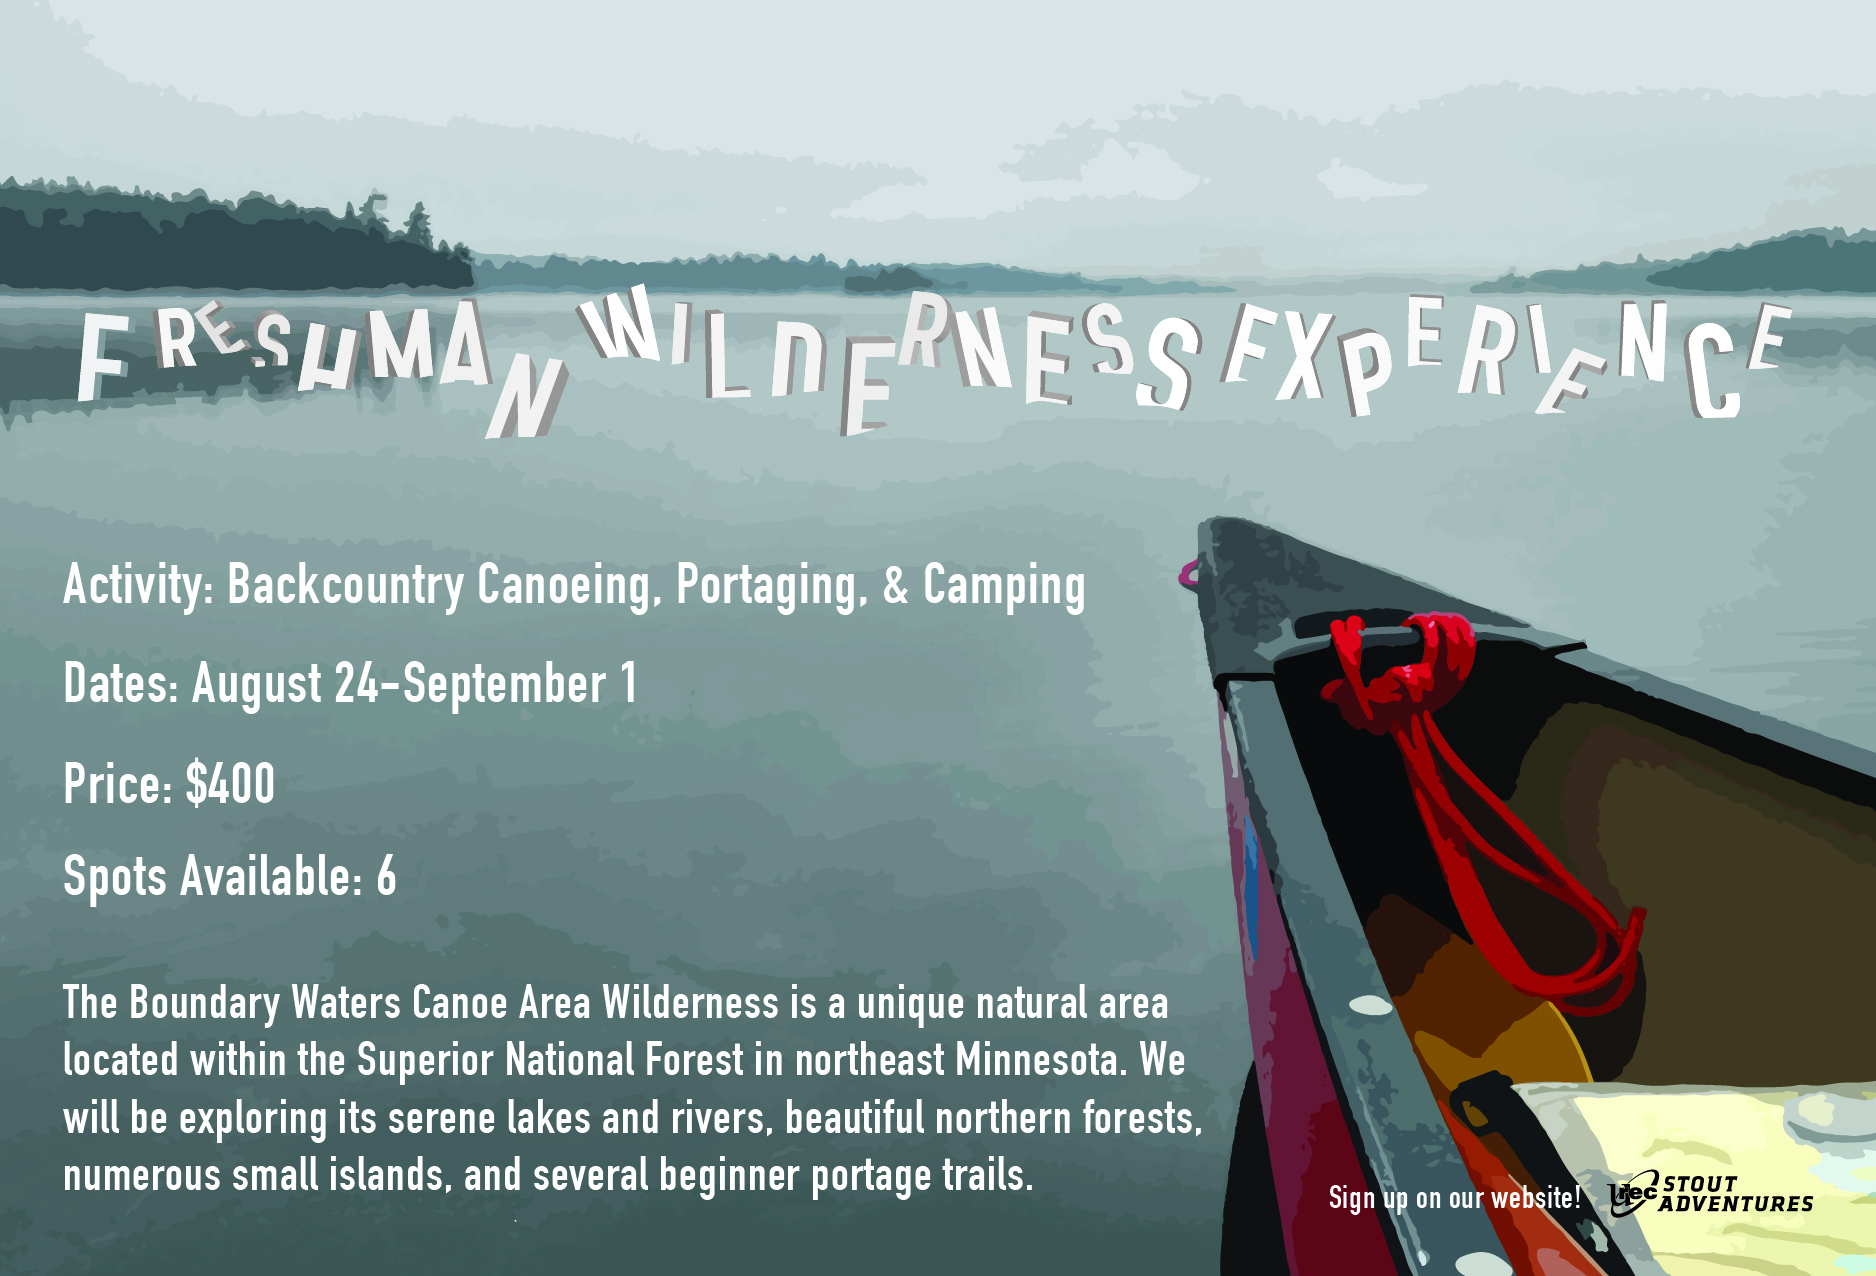 FWE 2019: Canoeing the Boundary Waters Aug 24 - Sep 1